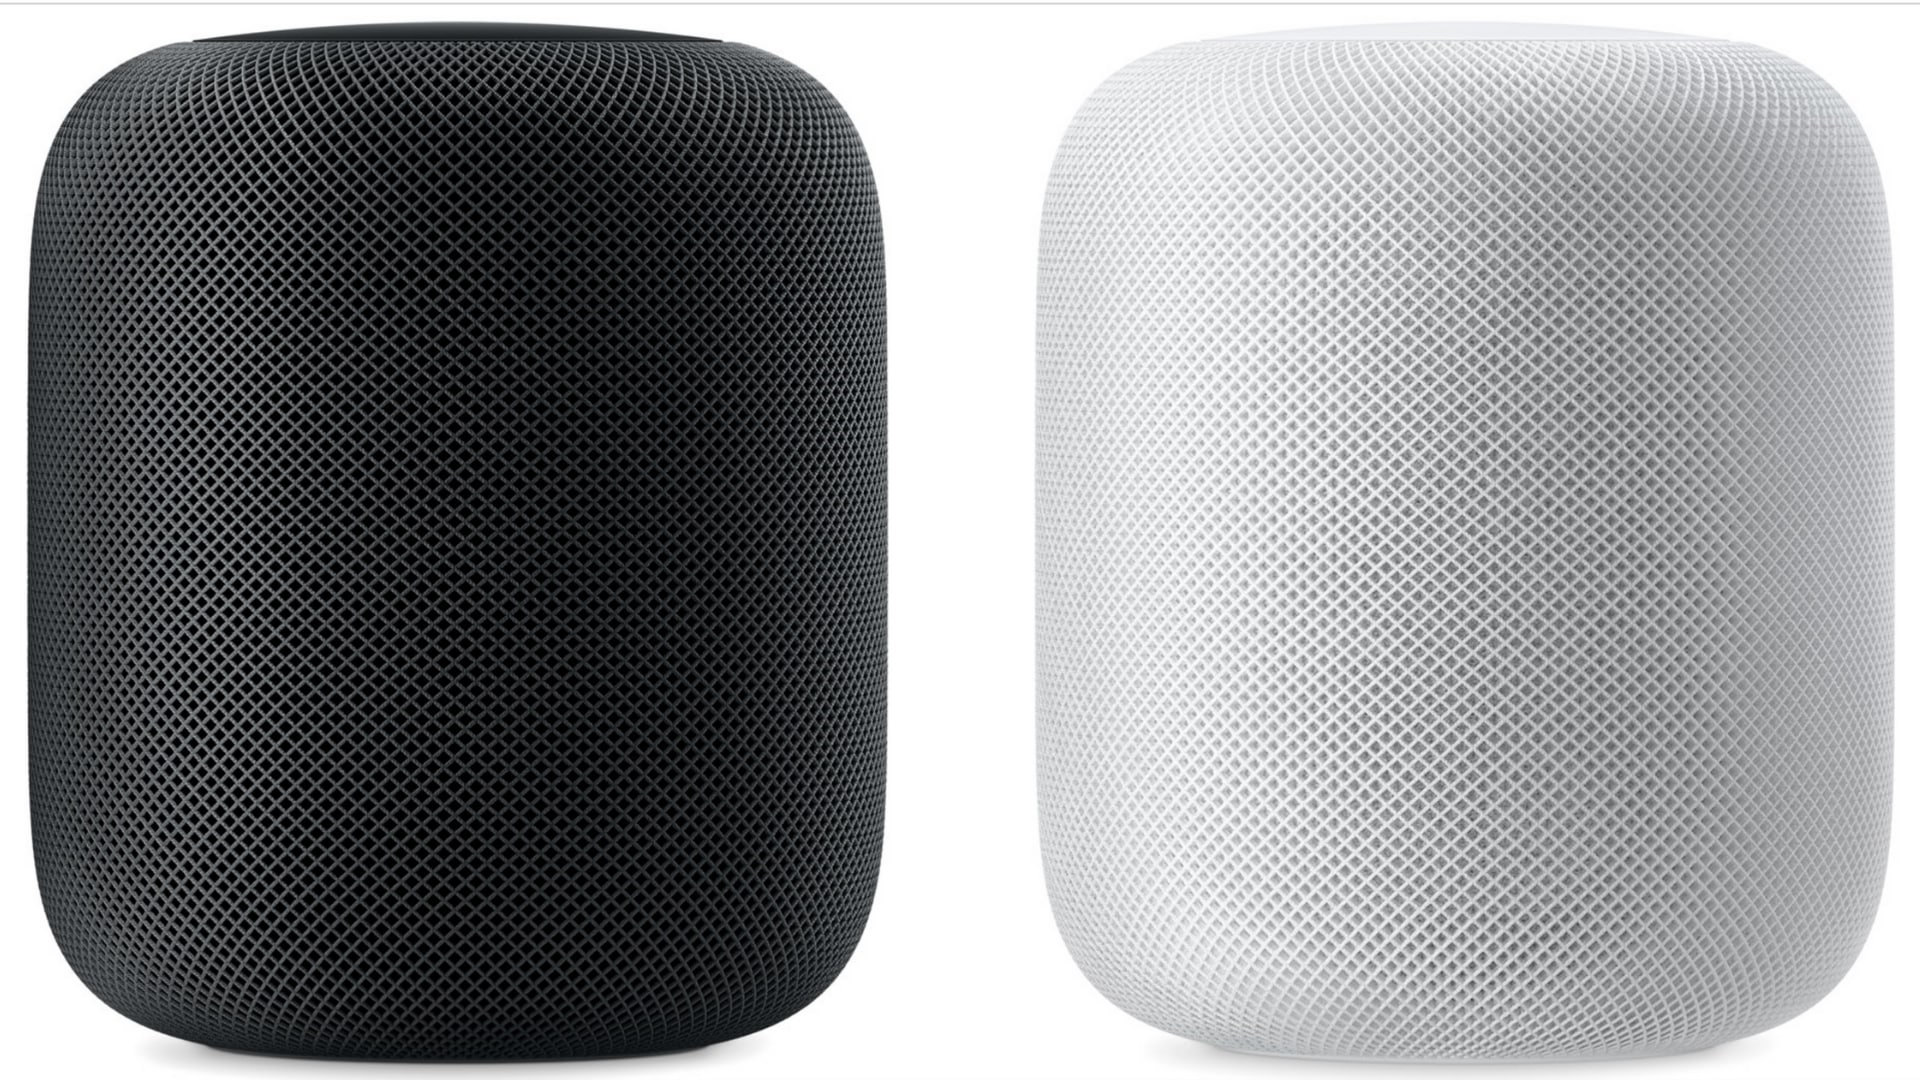 The Apple HomePod is available in two colours - White and Space Grey.